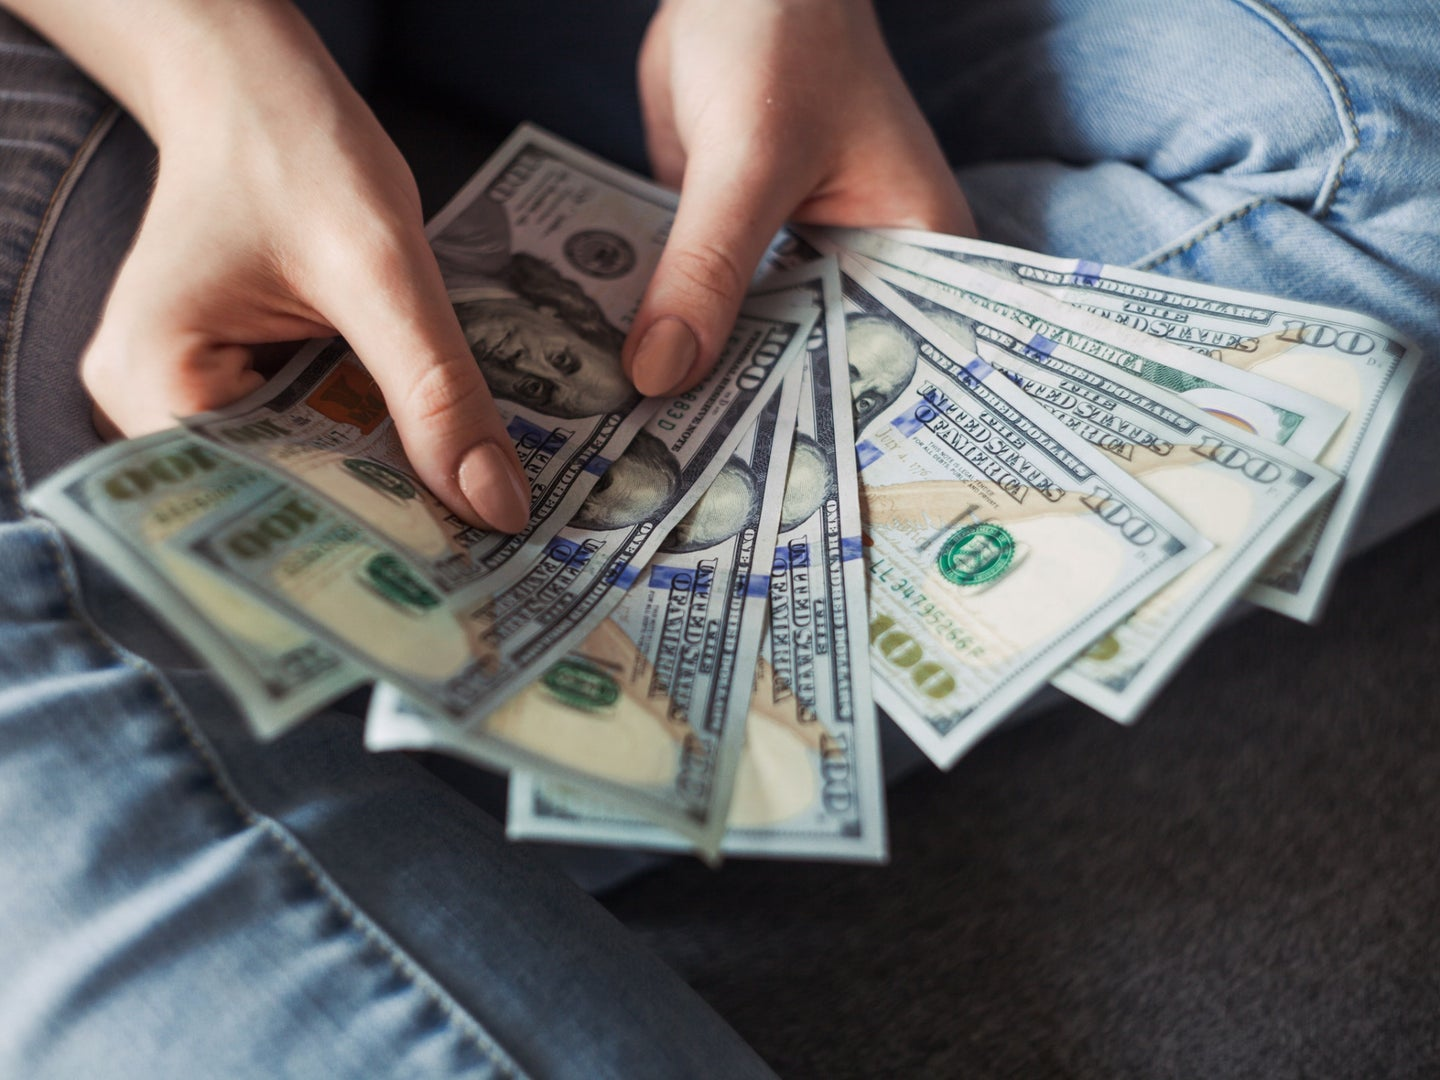 A person sitting on the floor, holding several $100 bills in a fan shape.